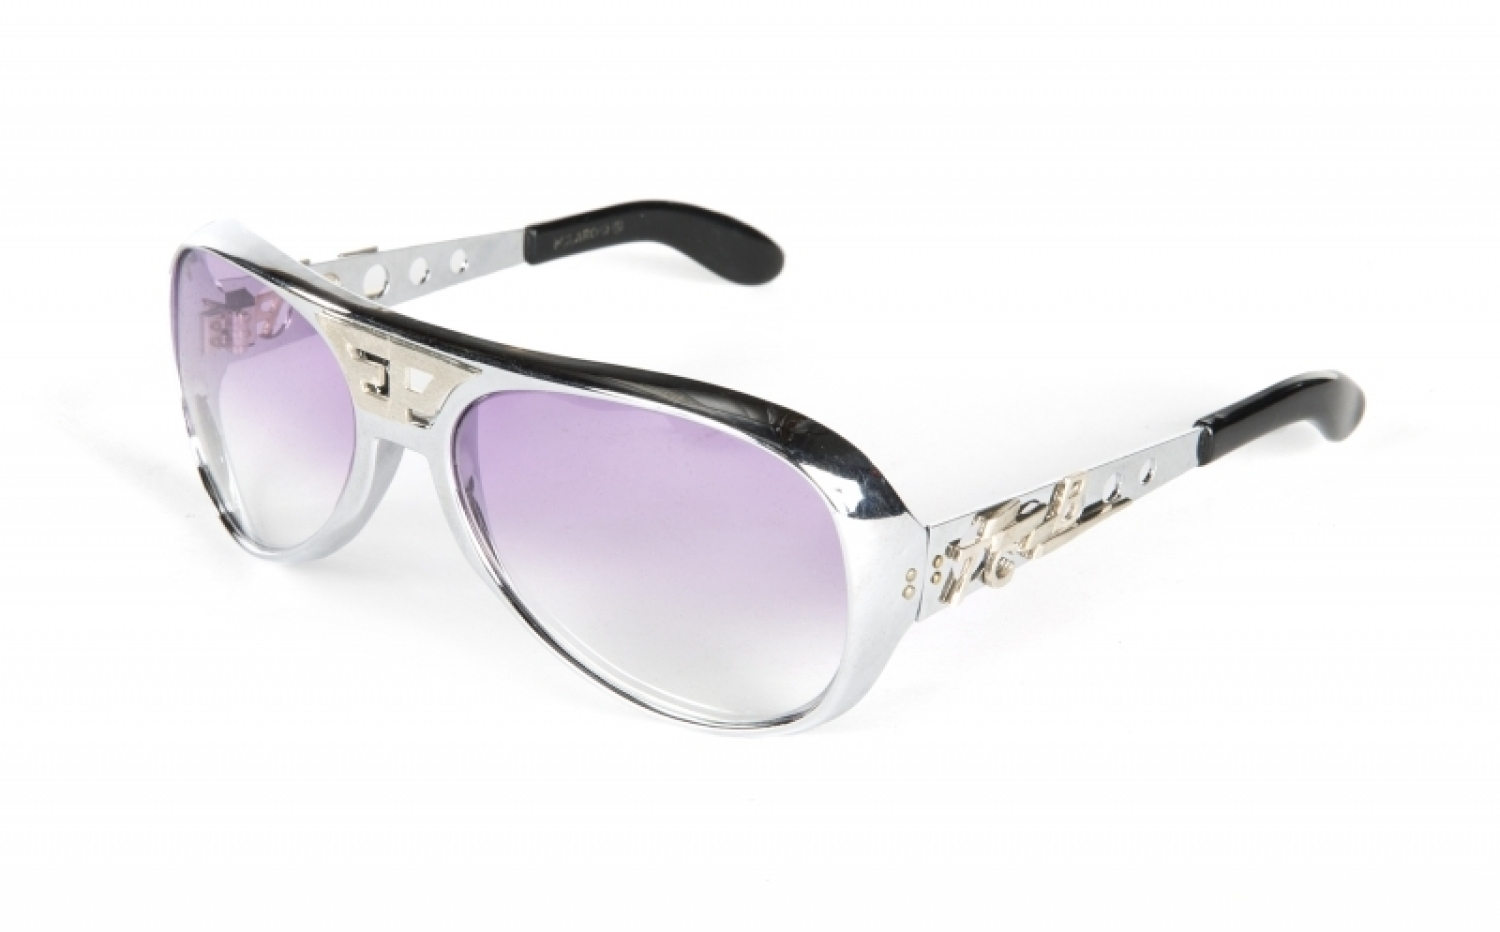 2b4dbfce1561 ELVIS PRESLEY PERSONALIZED SUNGLASSES • - Current price: $22500